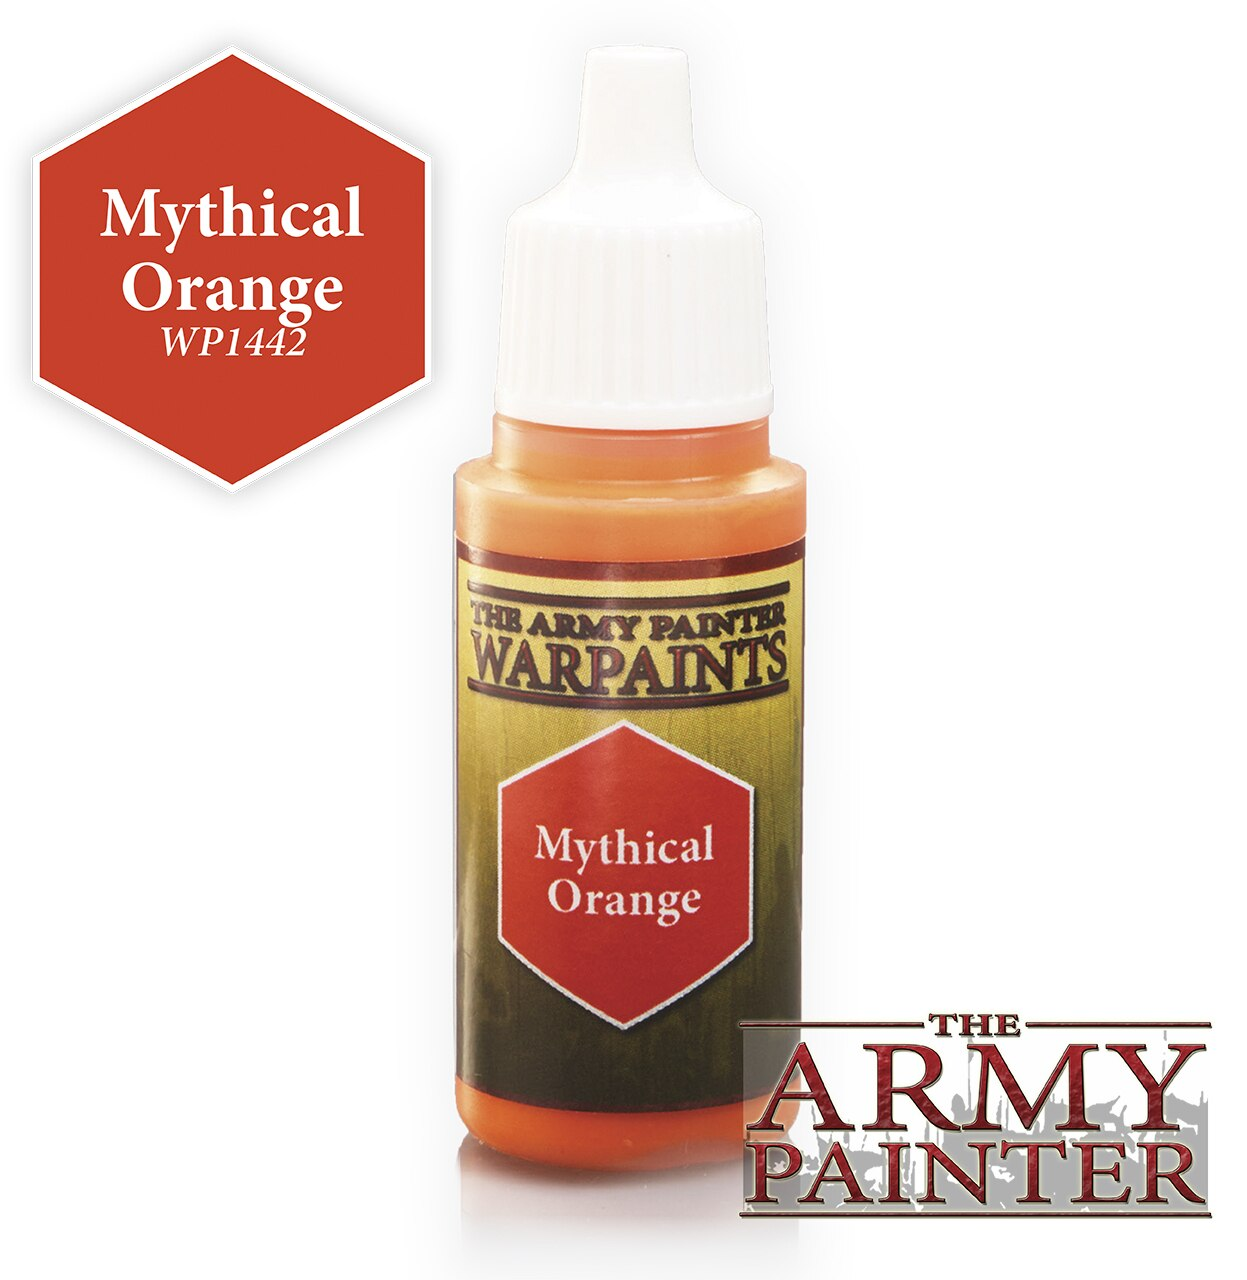 Army Painter Warpaint - Mythical Orange